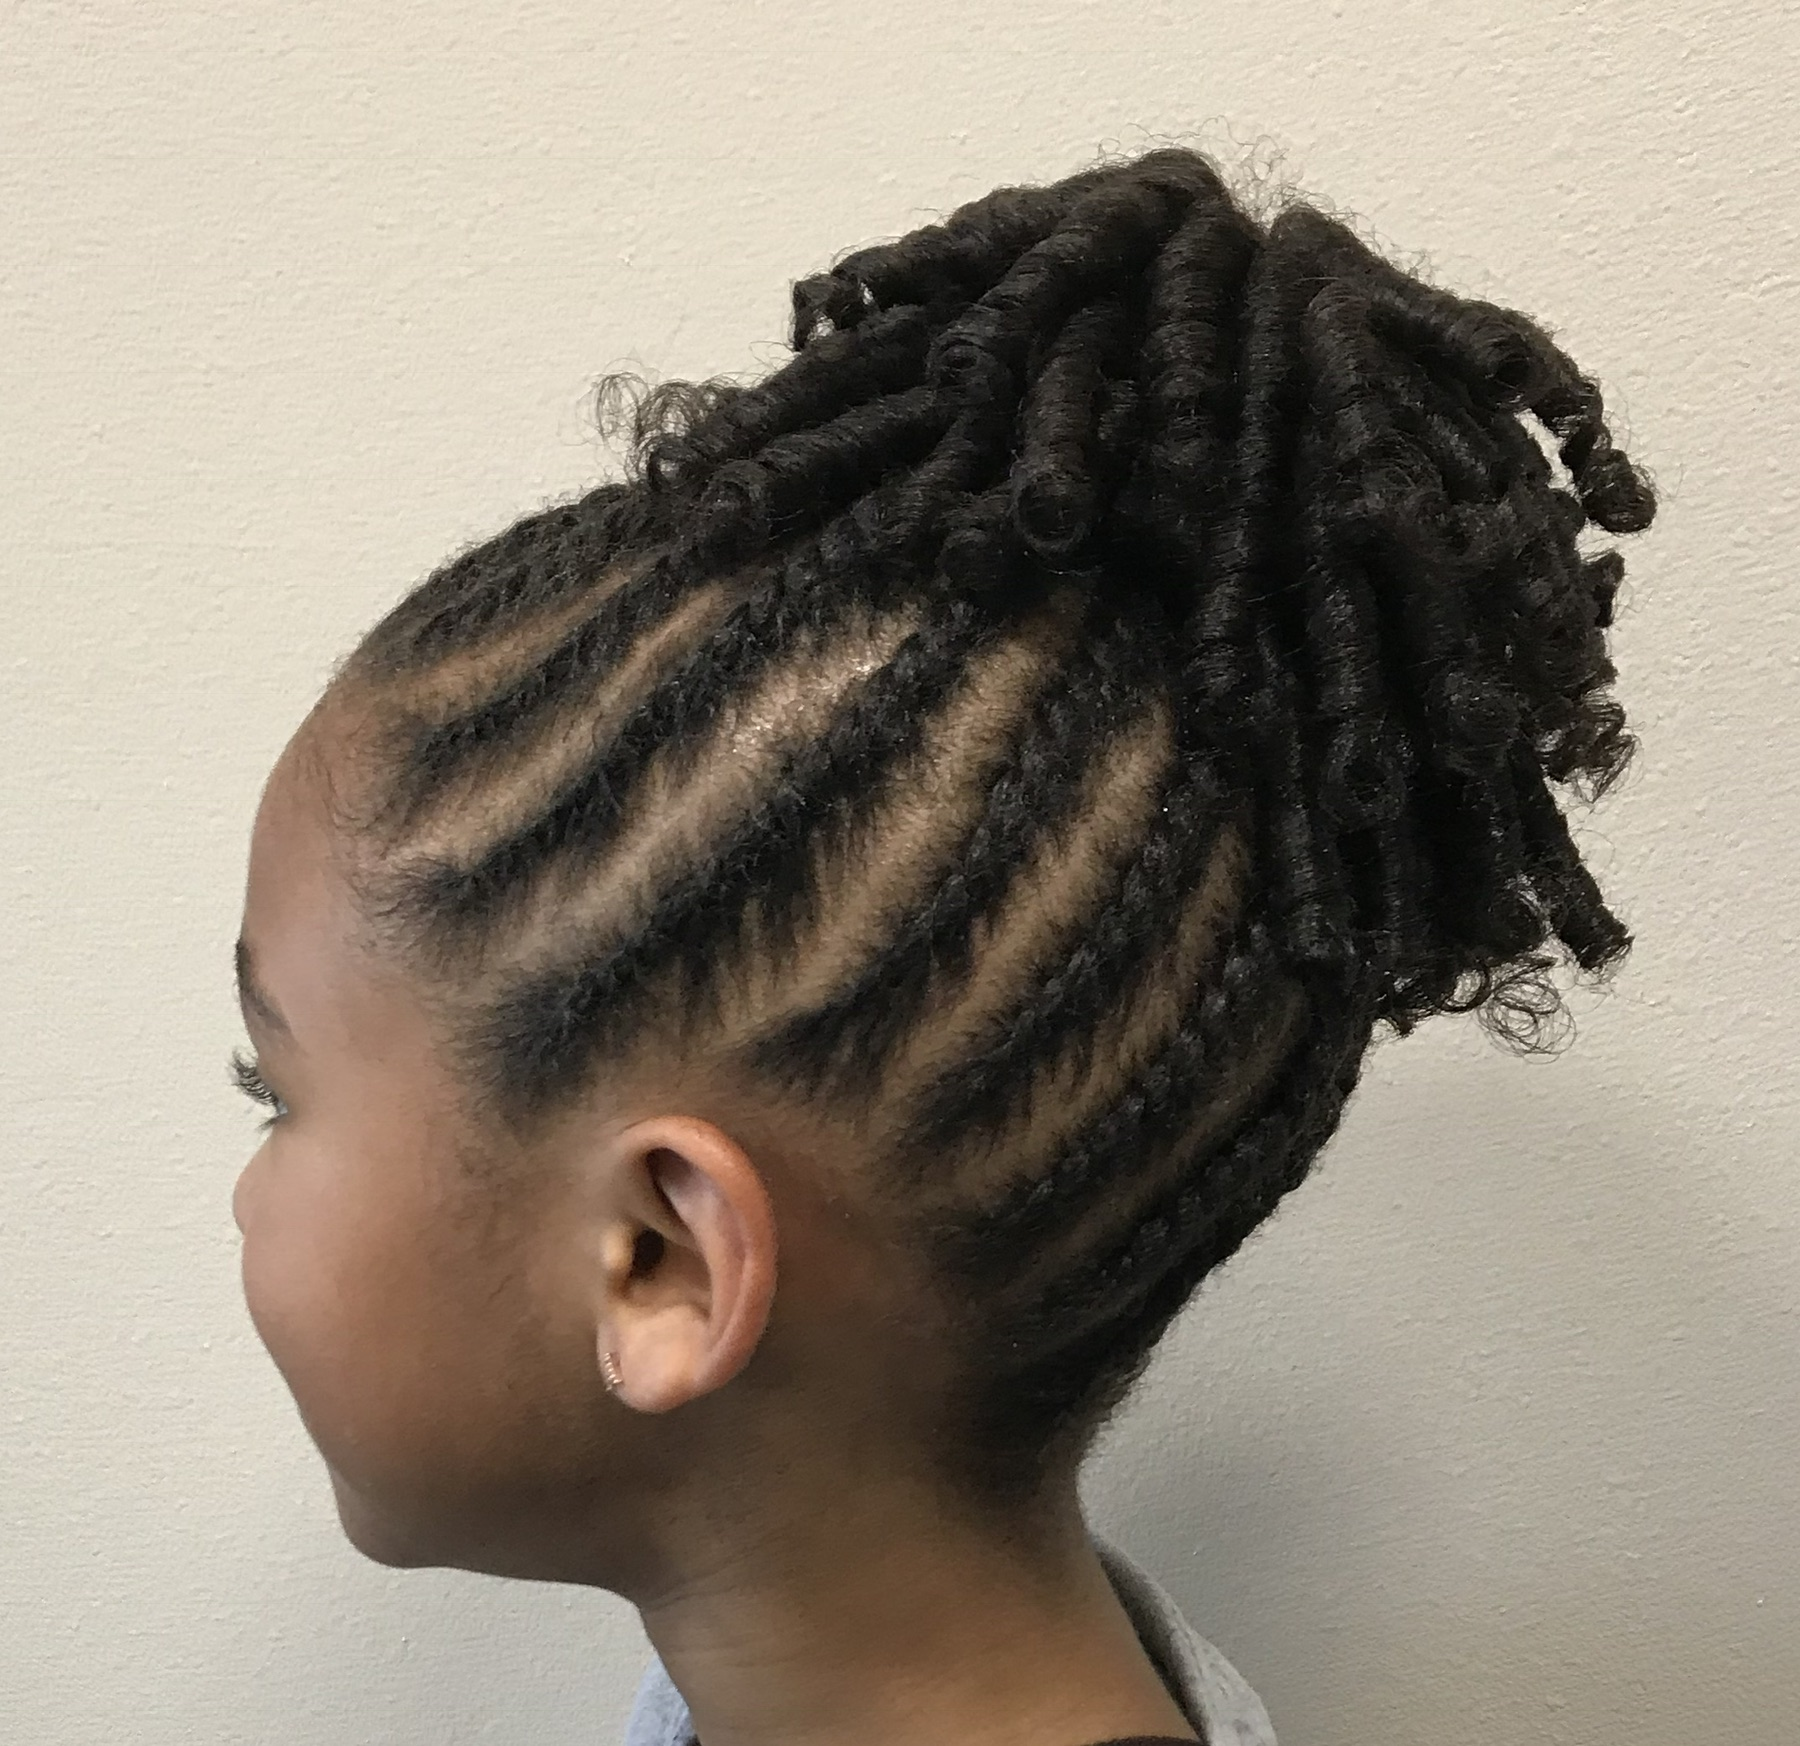 Styles By Areianne